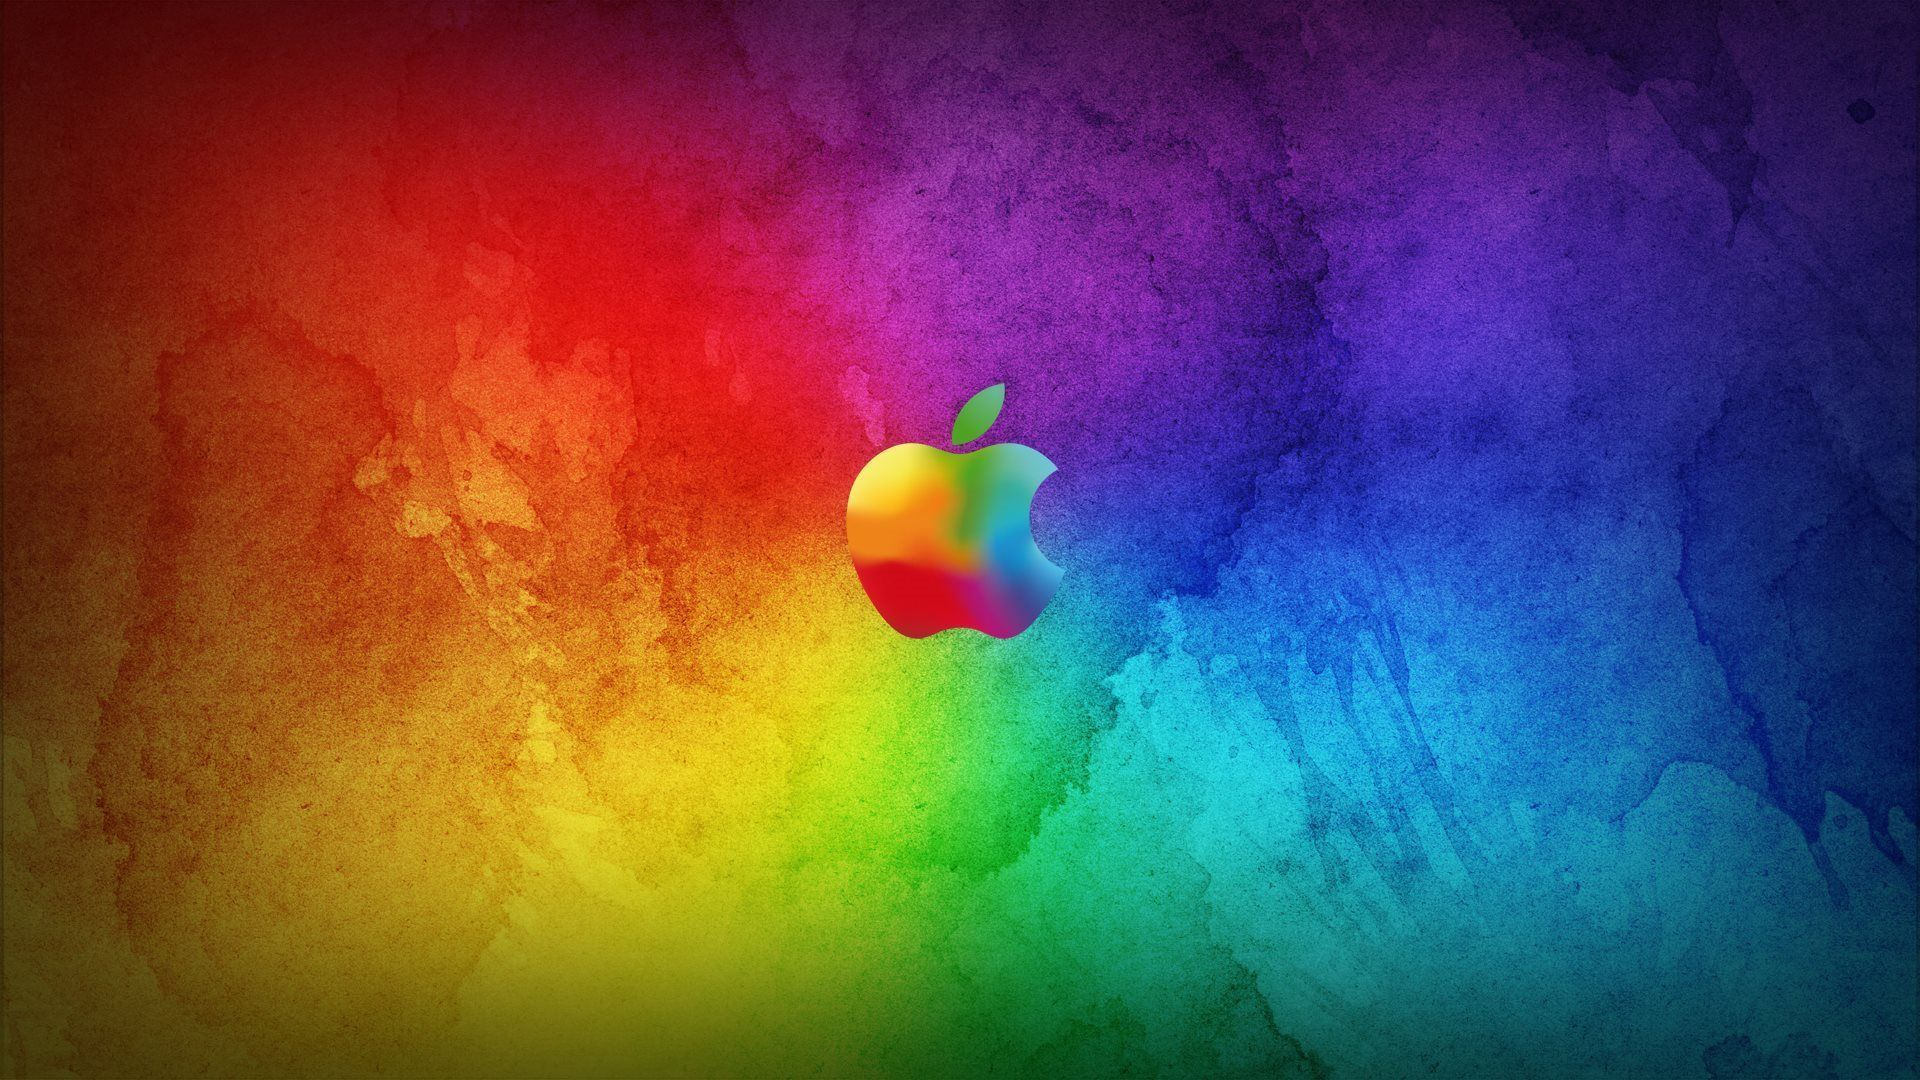 Best Wallpaper Macbook Ultra Hd - 48fa00e0d5b623def3fc8fcd34695288  Graphic_163659.jpg